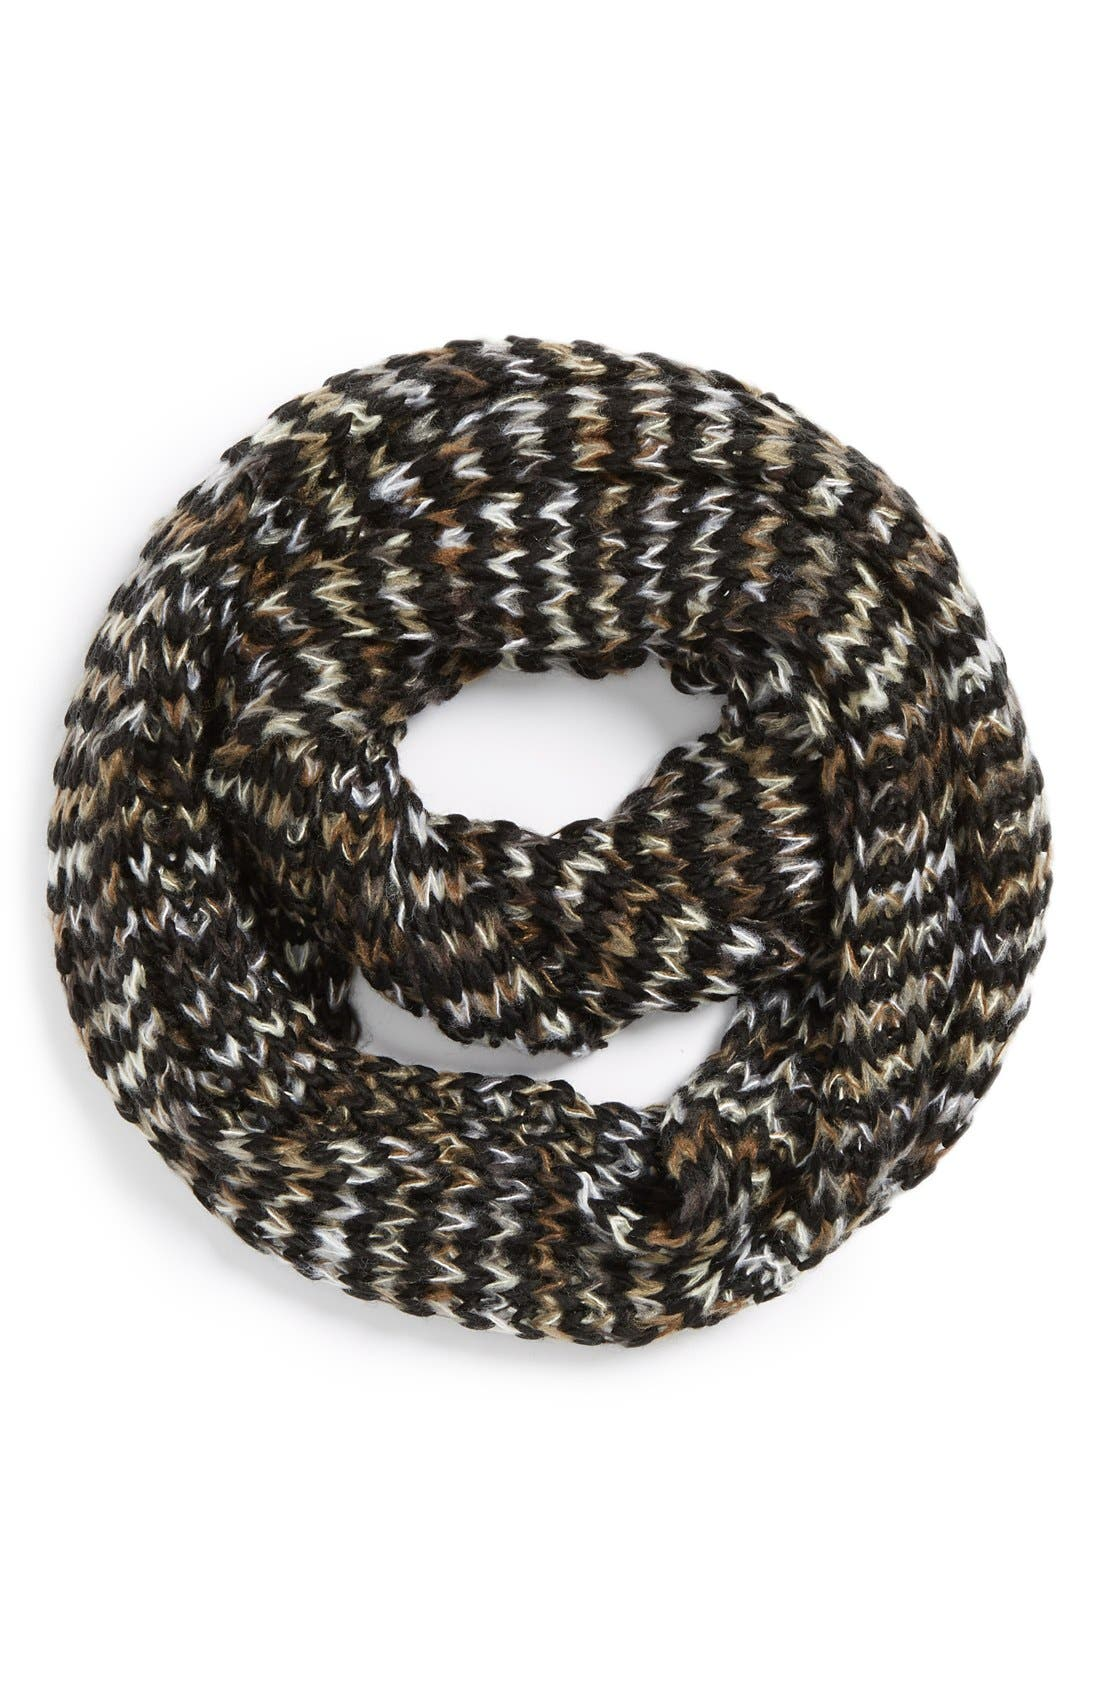 Alternate Image 1 Selected - BP. Marled Chevron Knit Infinity Scarf (Juniors)